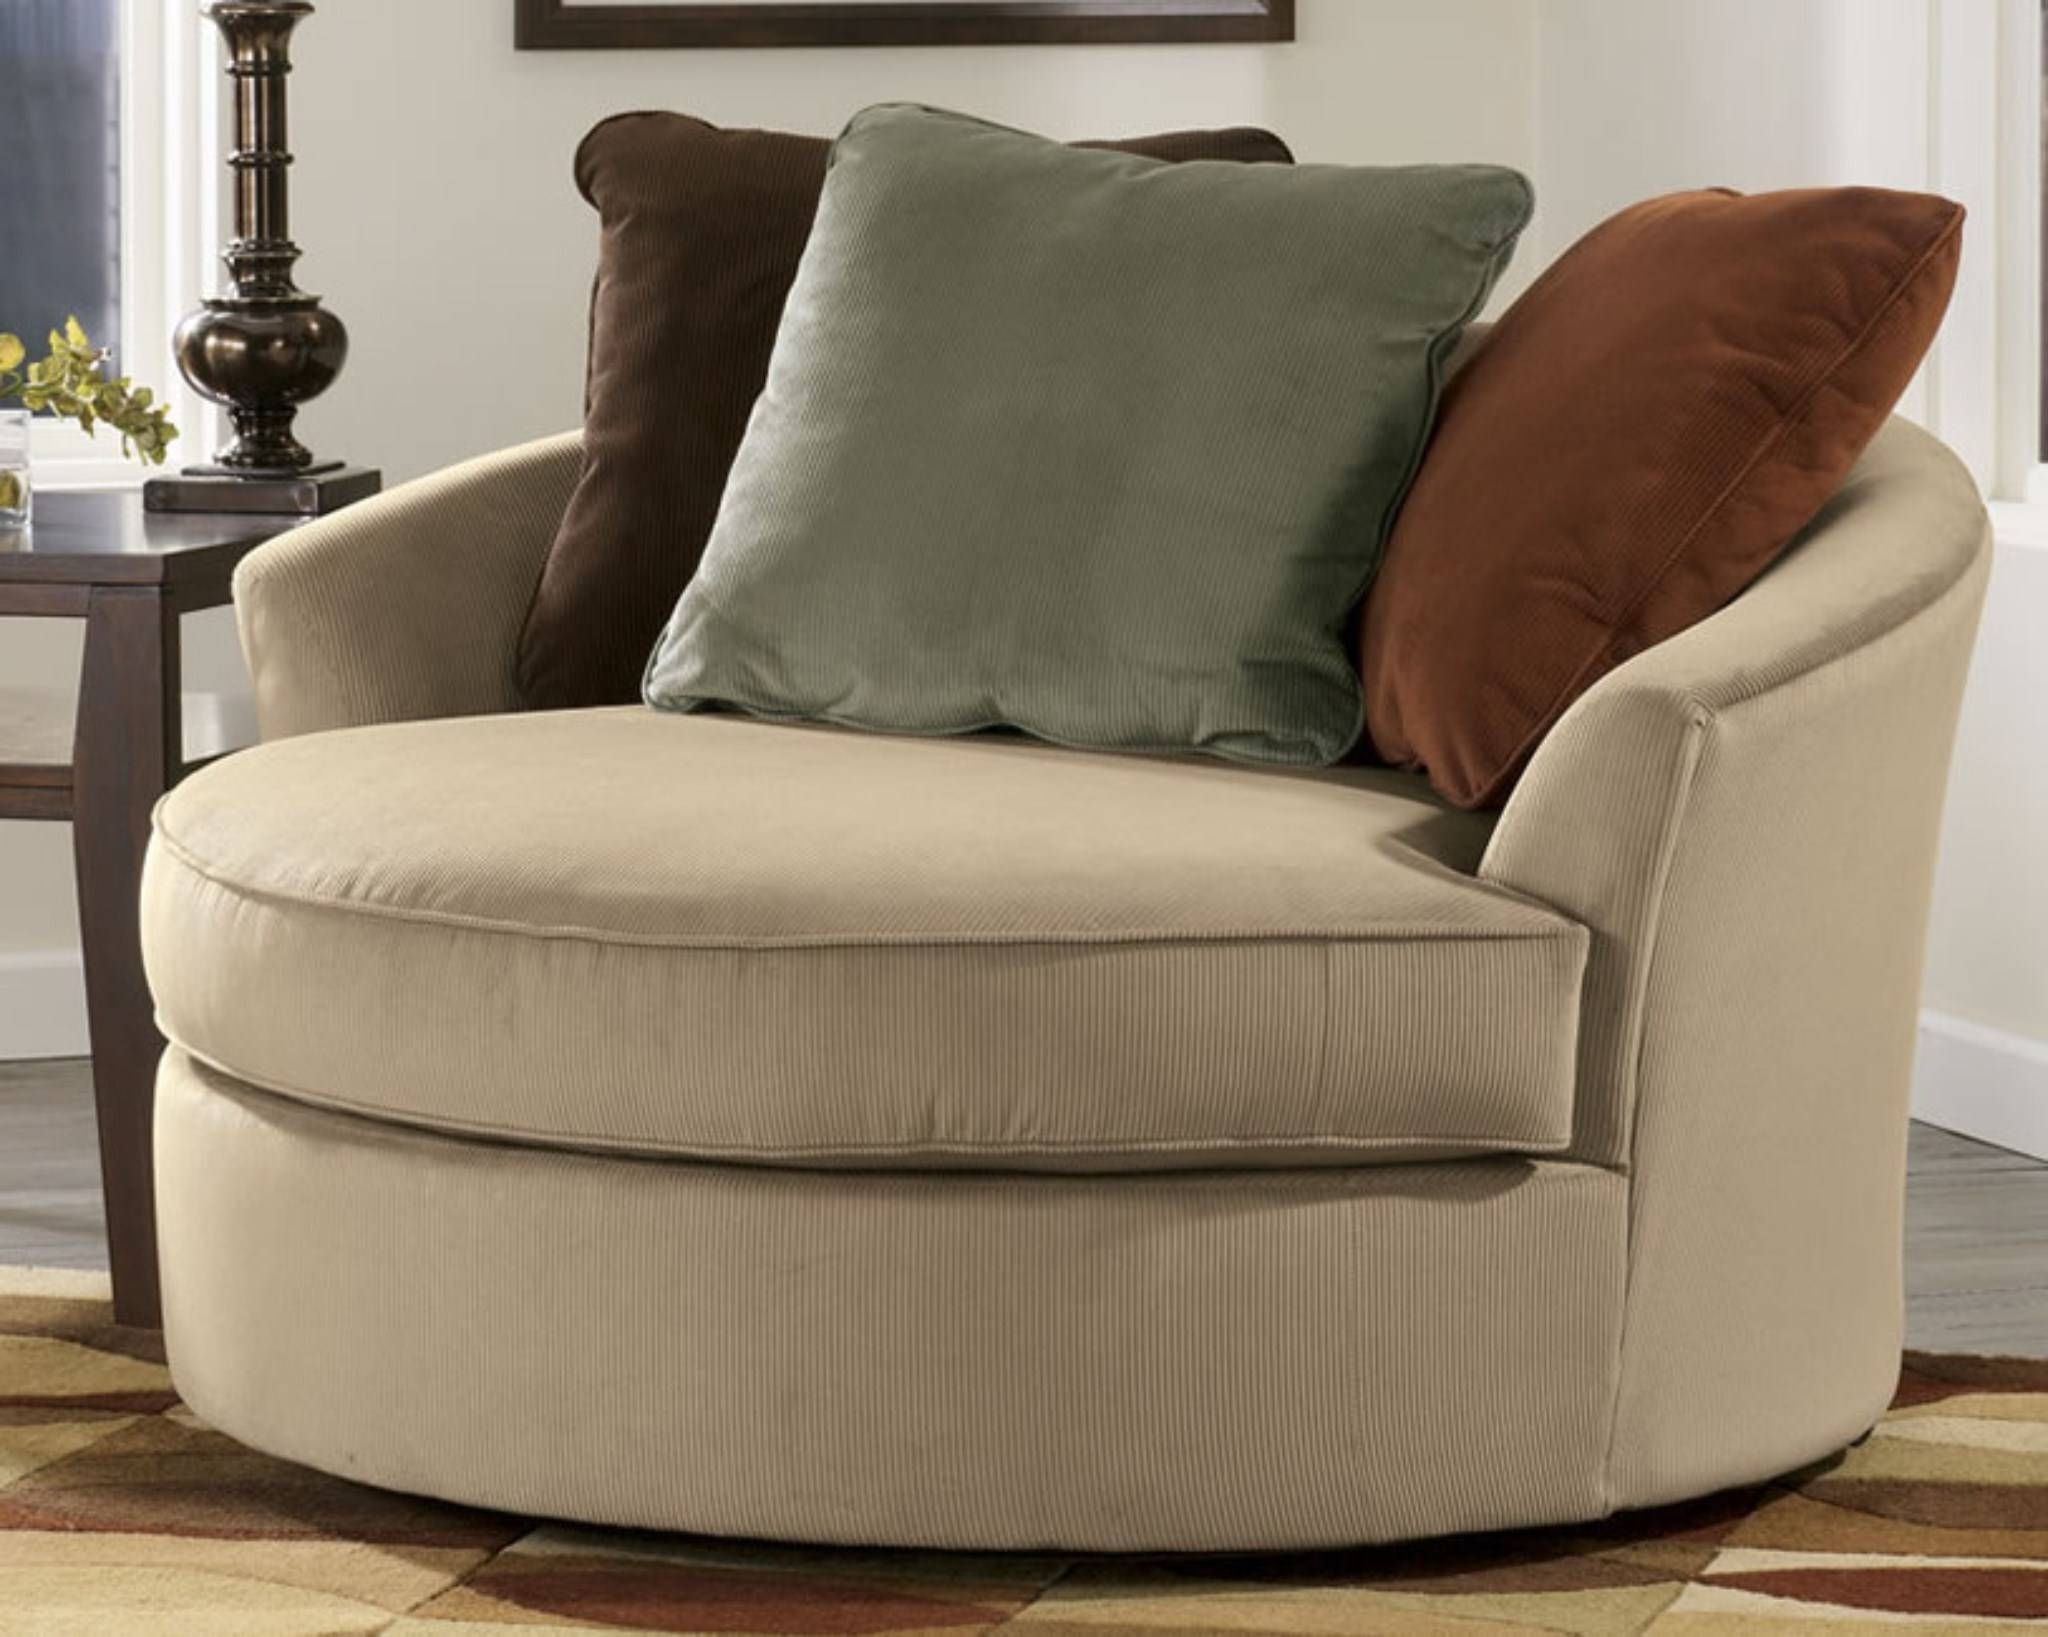 Round Swivel Sofa Chair - Leather Sectional Sofa within Spinning Sofa Chairs (Image 19 of 30)